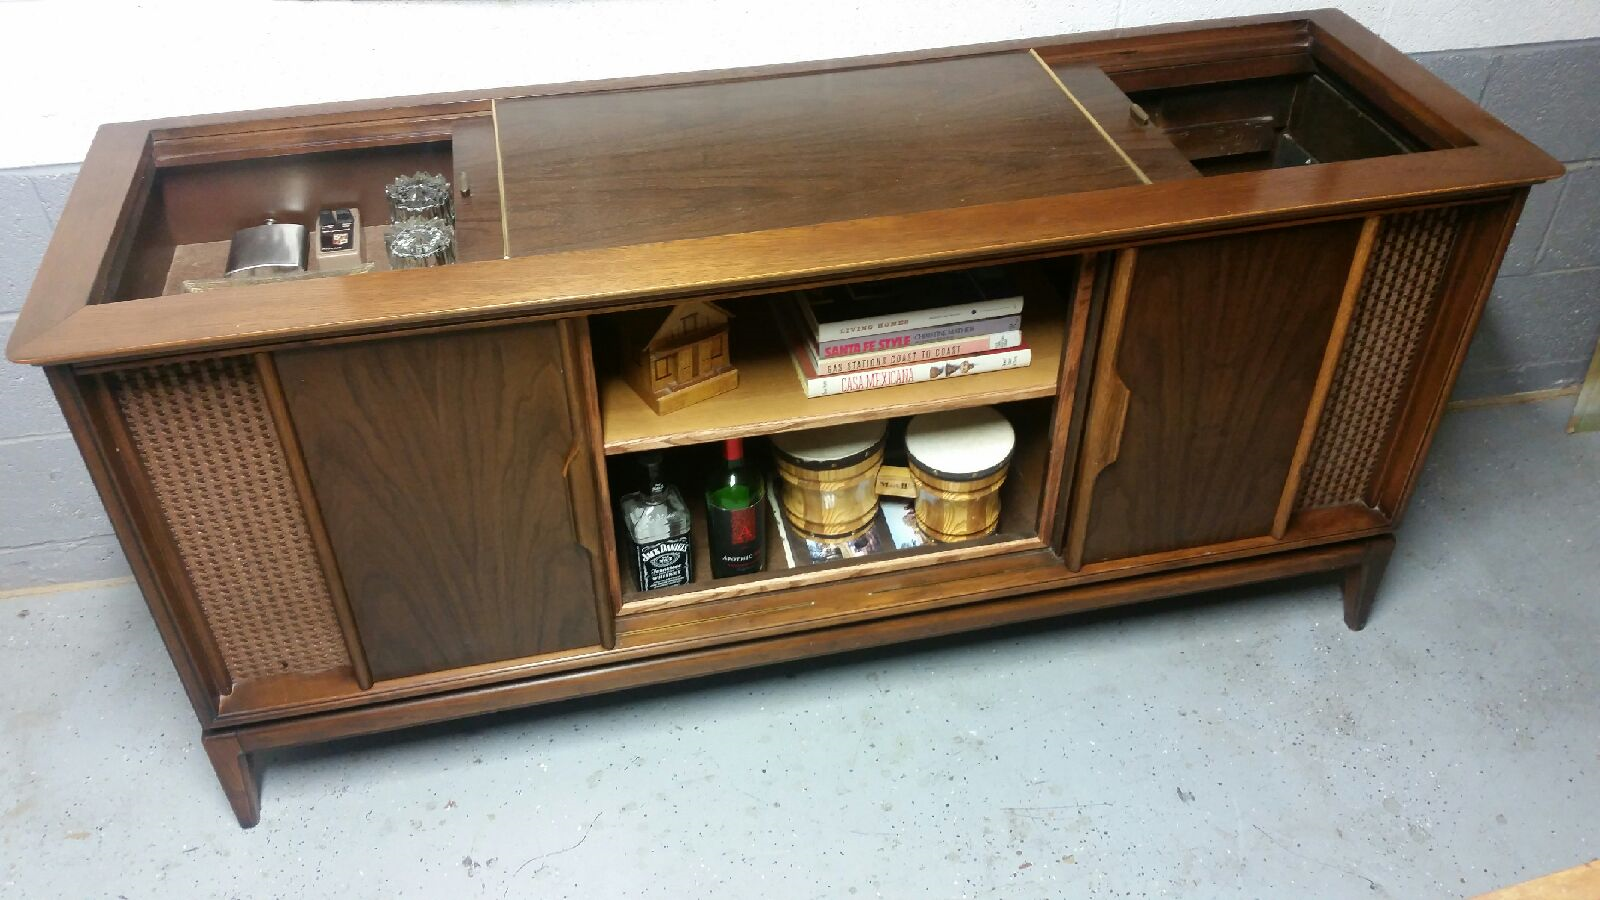 Tv Stereo Stands Cabinets Magnavox Tv Stereo Cabinet Repurposed As A Credenza Available On